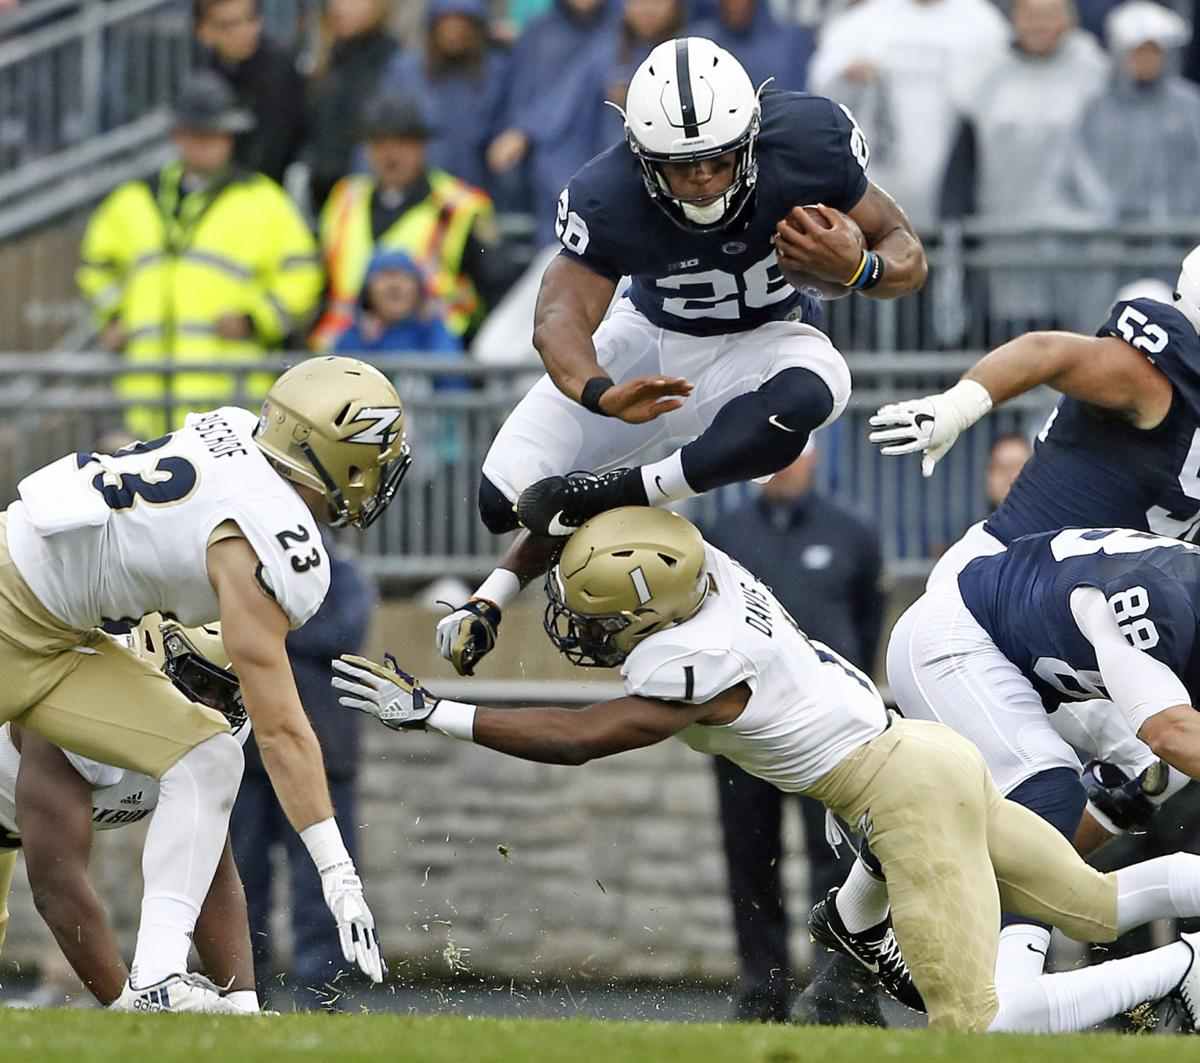 Barkley dazzles in Penn State's 52-0 win over Akron